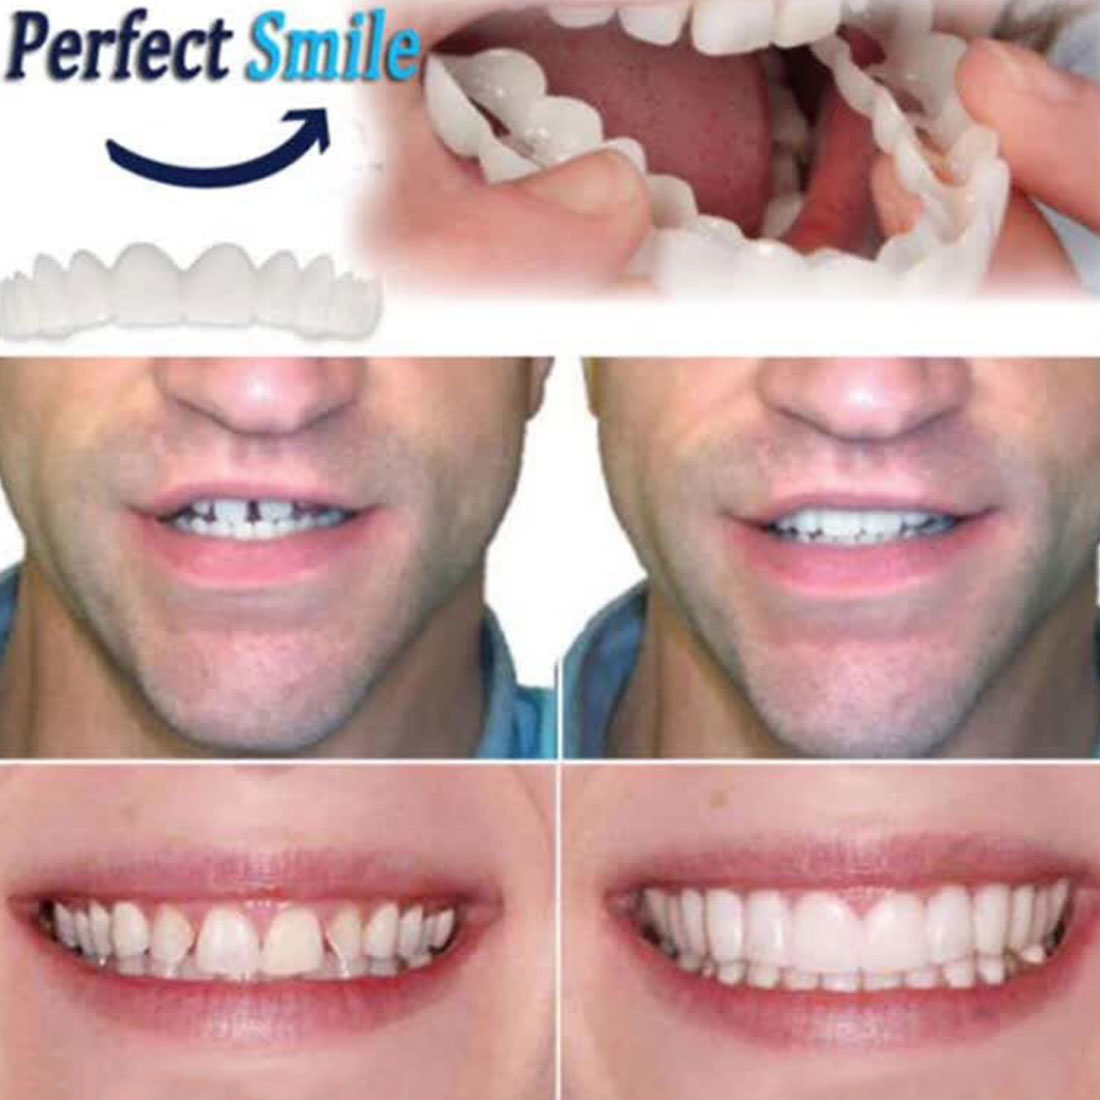 5pcs Fit Dentes White Cover Denture Teeth Top Cosmetic bleaching Yellow Teeth Whitening Temporary Smile Comfort-in Teeth Whitening from Beauty & Health